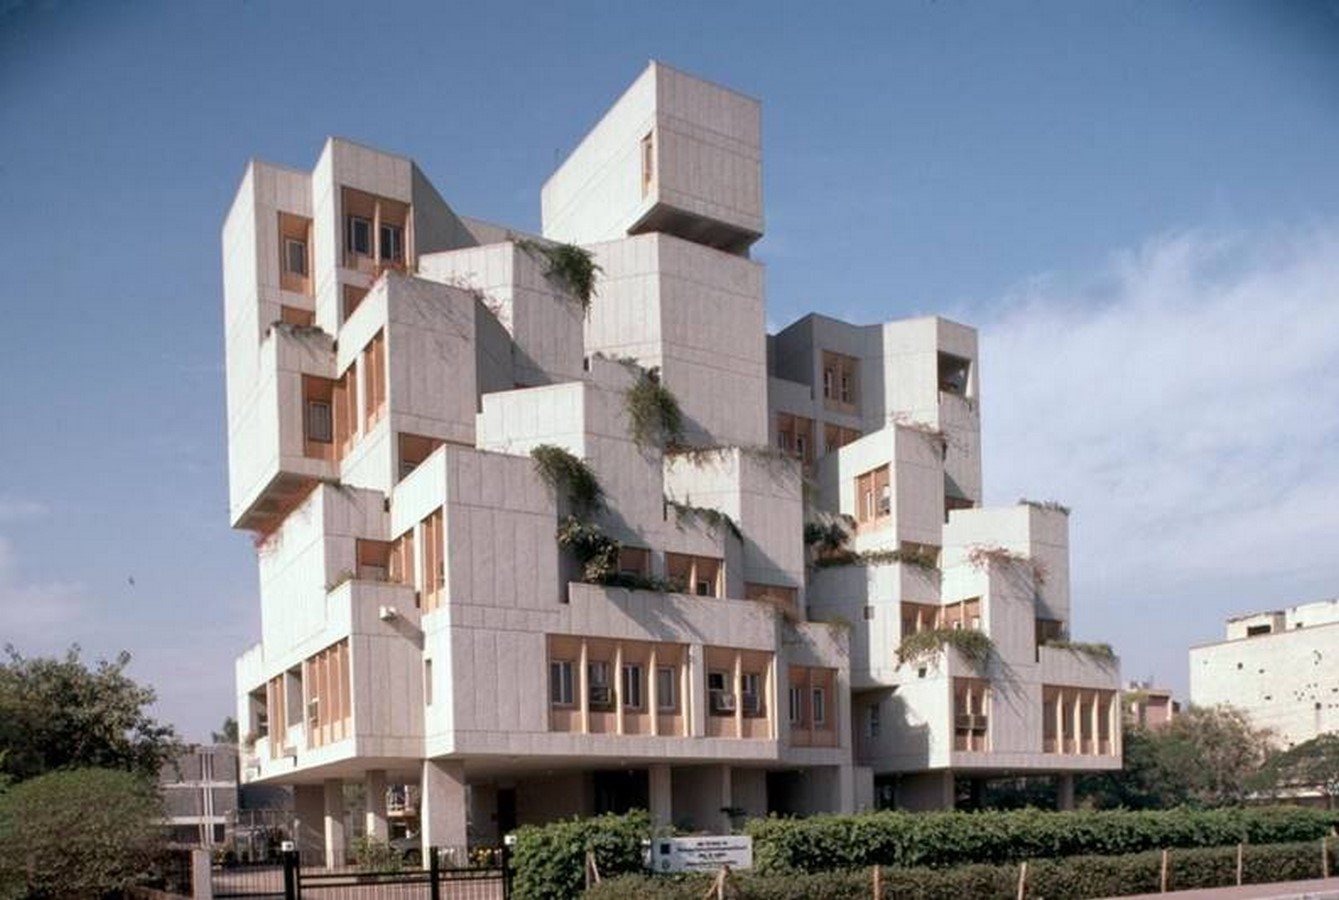 Indian architects that shaped the face of new India in post-independence era - Sheet11